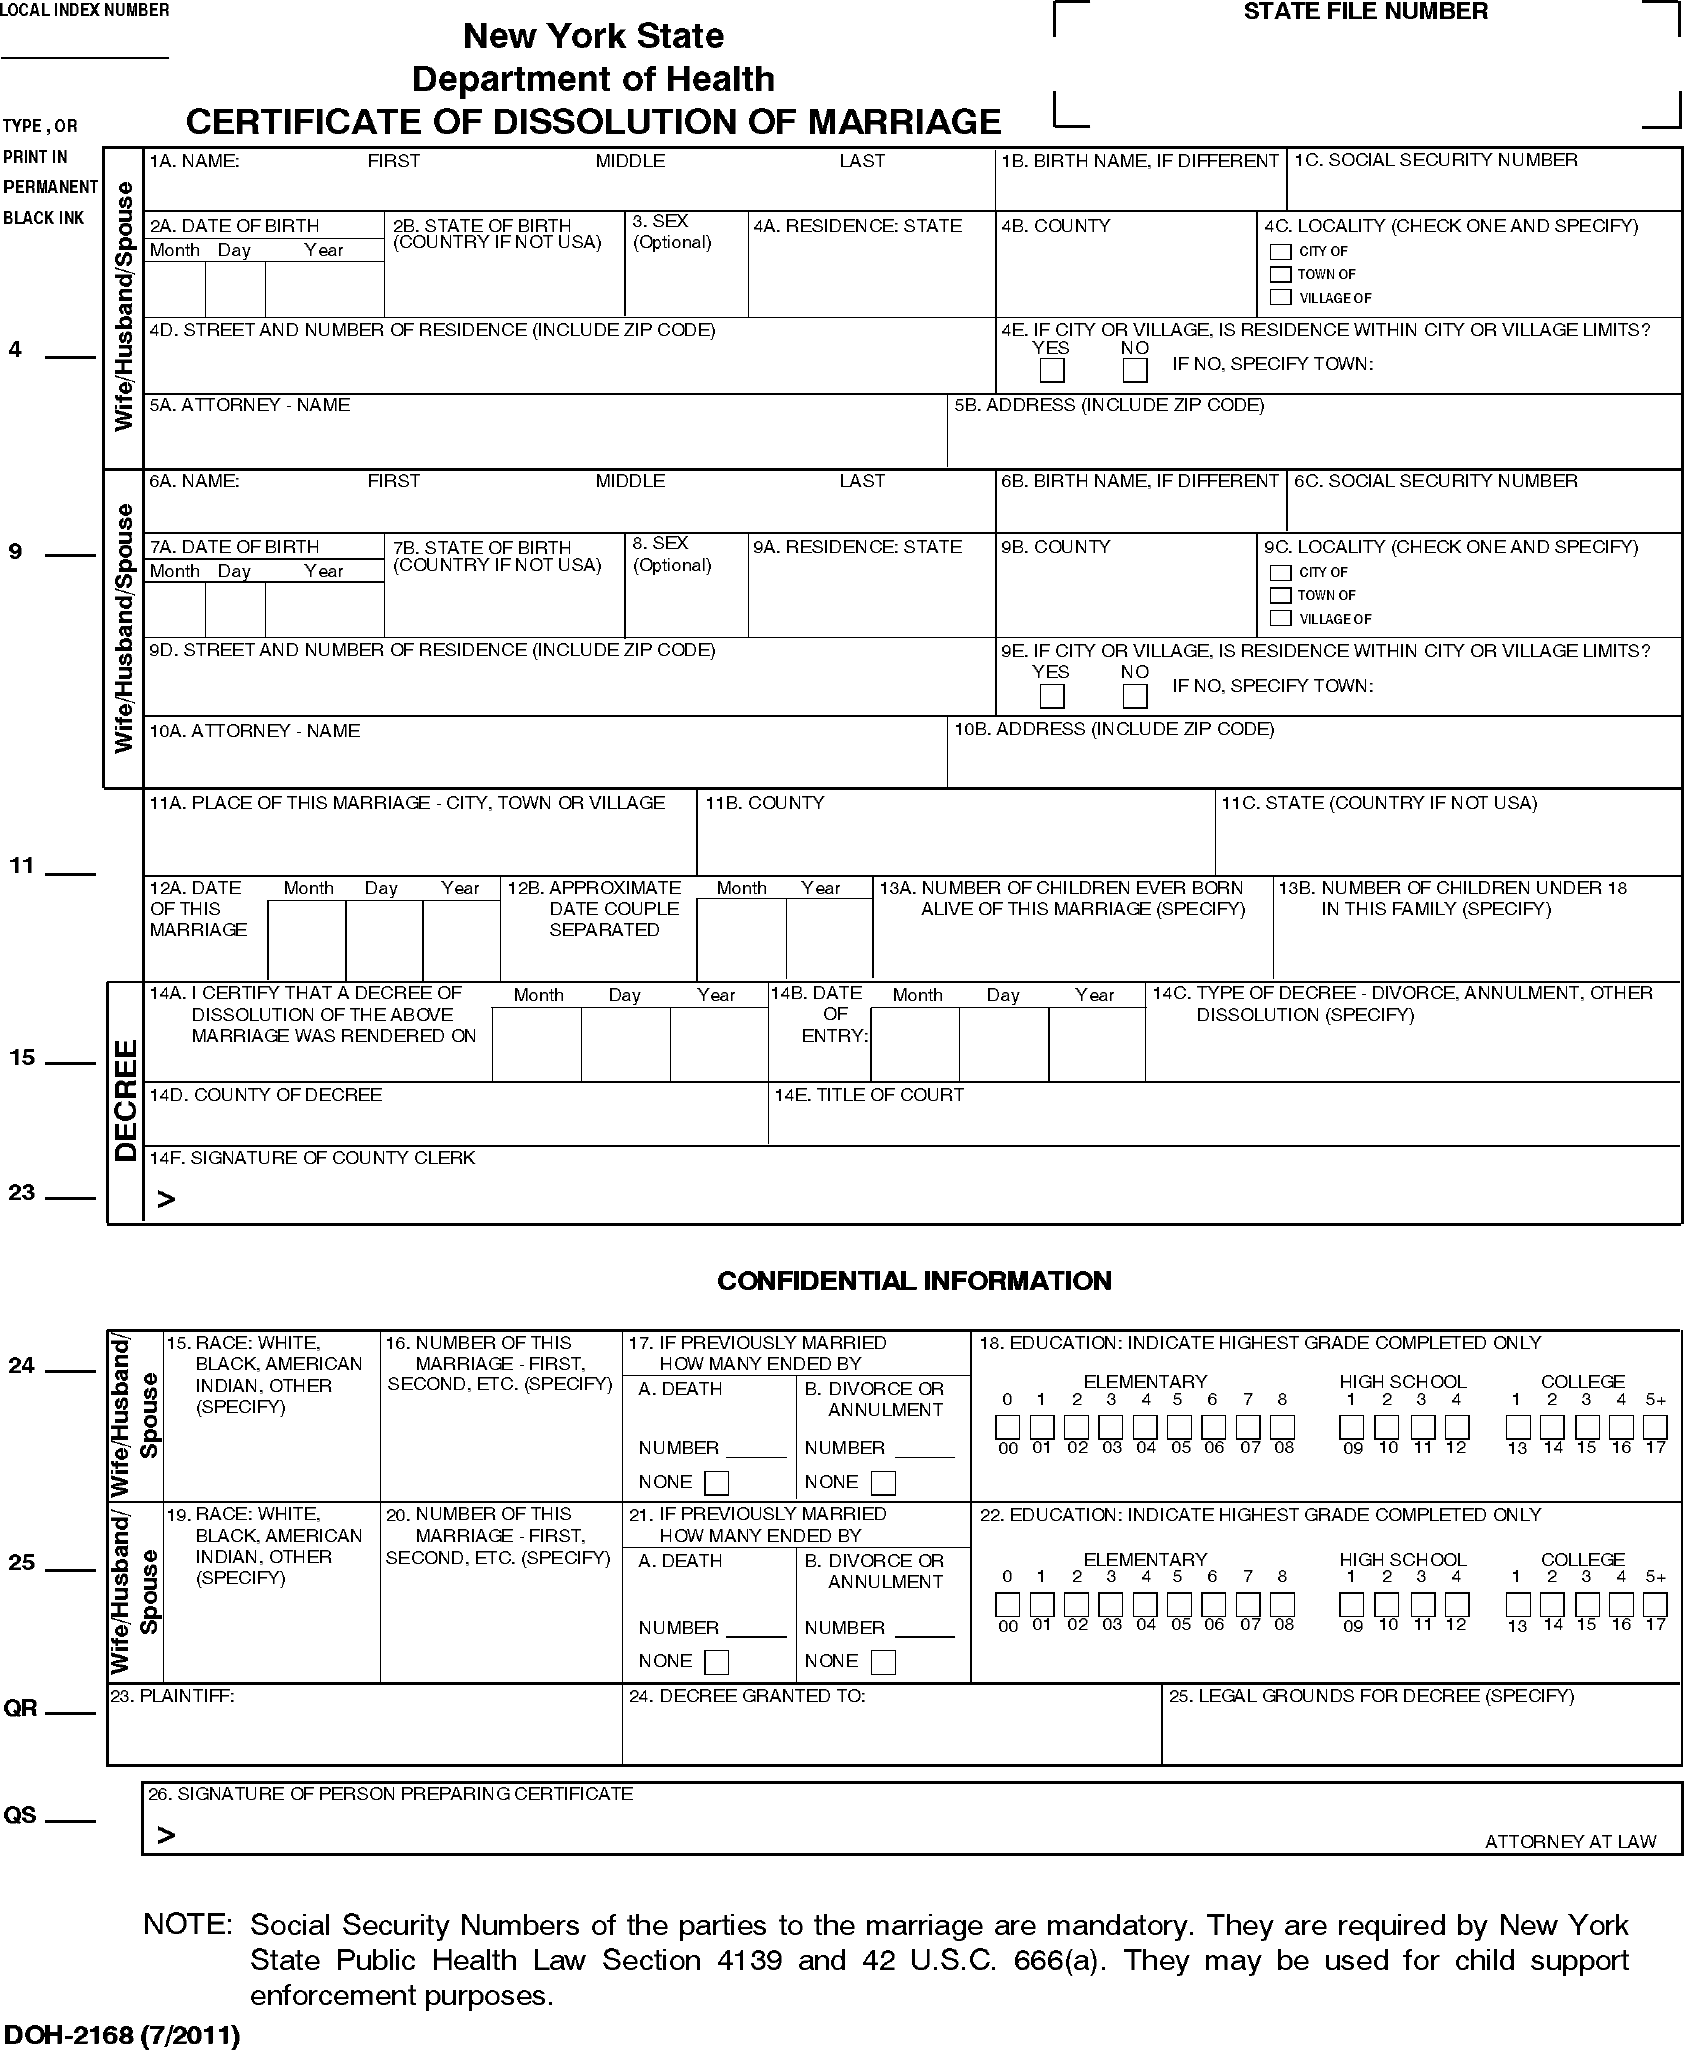 Worksheets Child Support Worksheet Ny certificate of dissolution marriage new york state free download page 11